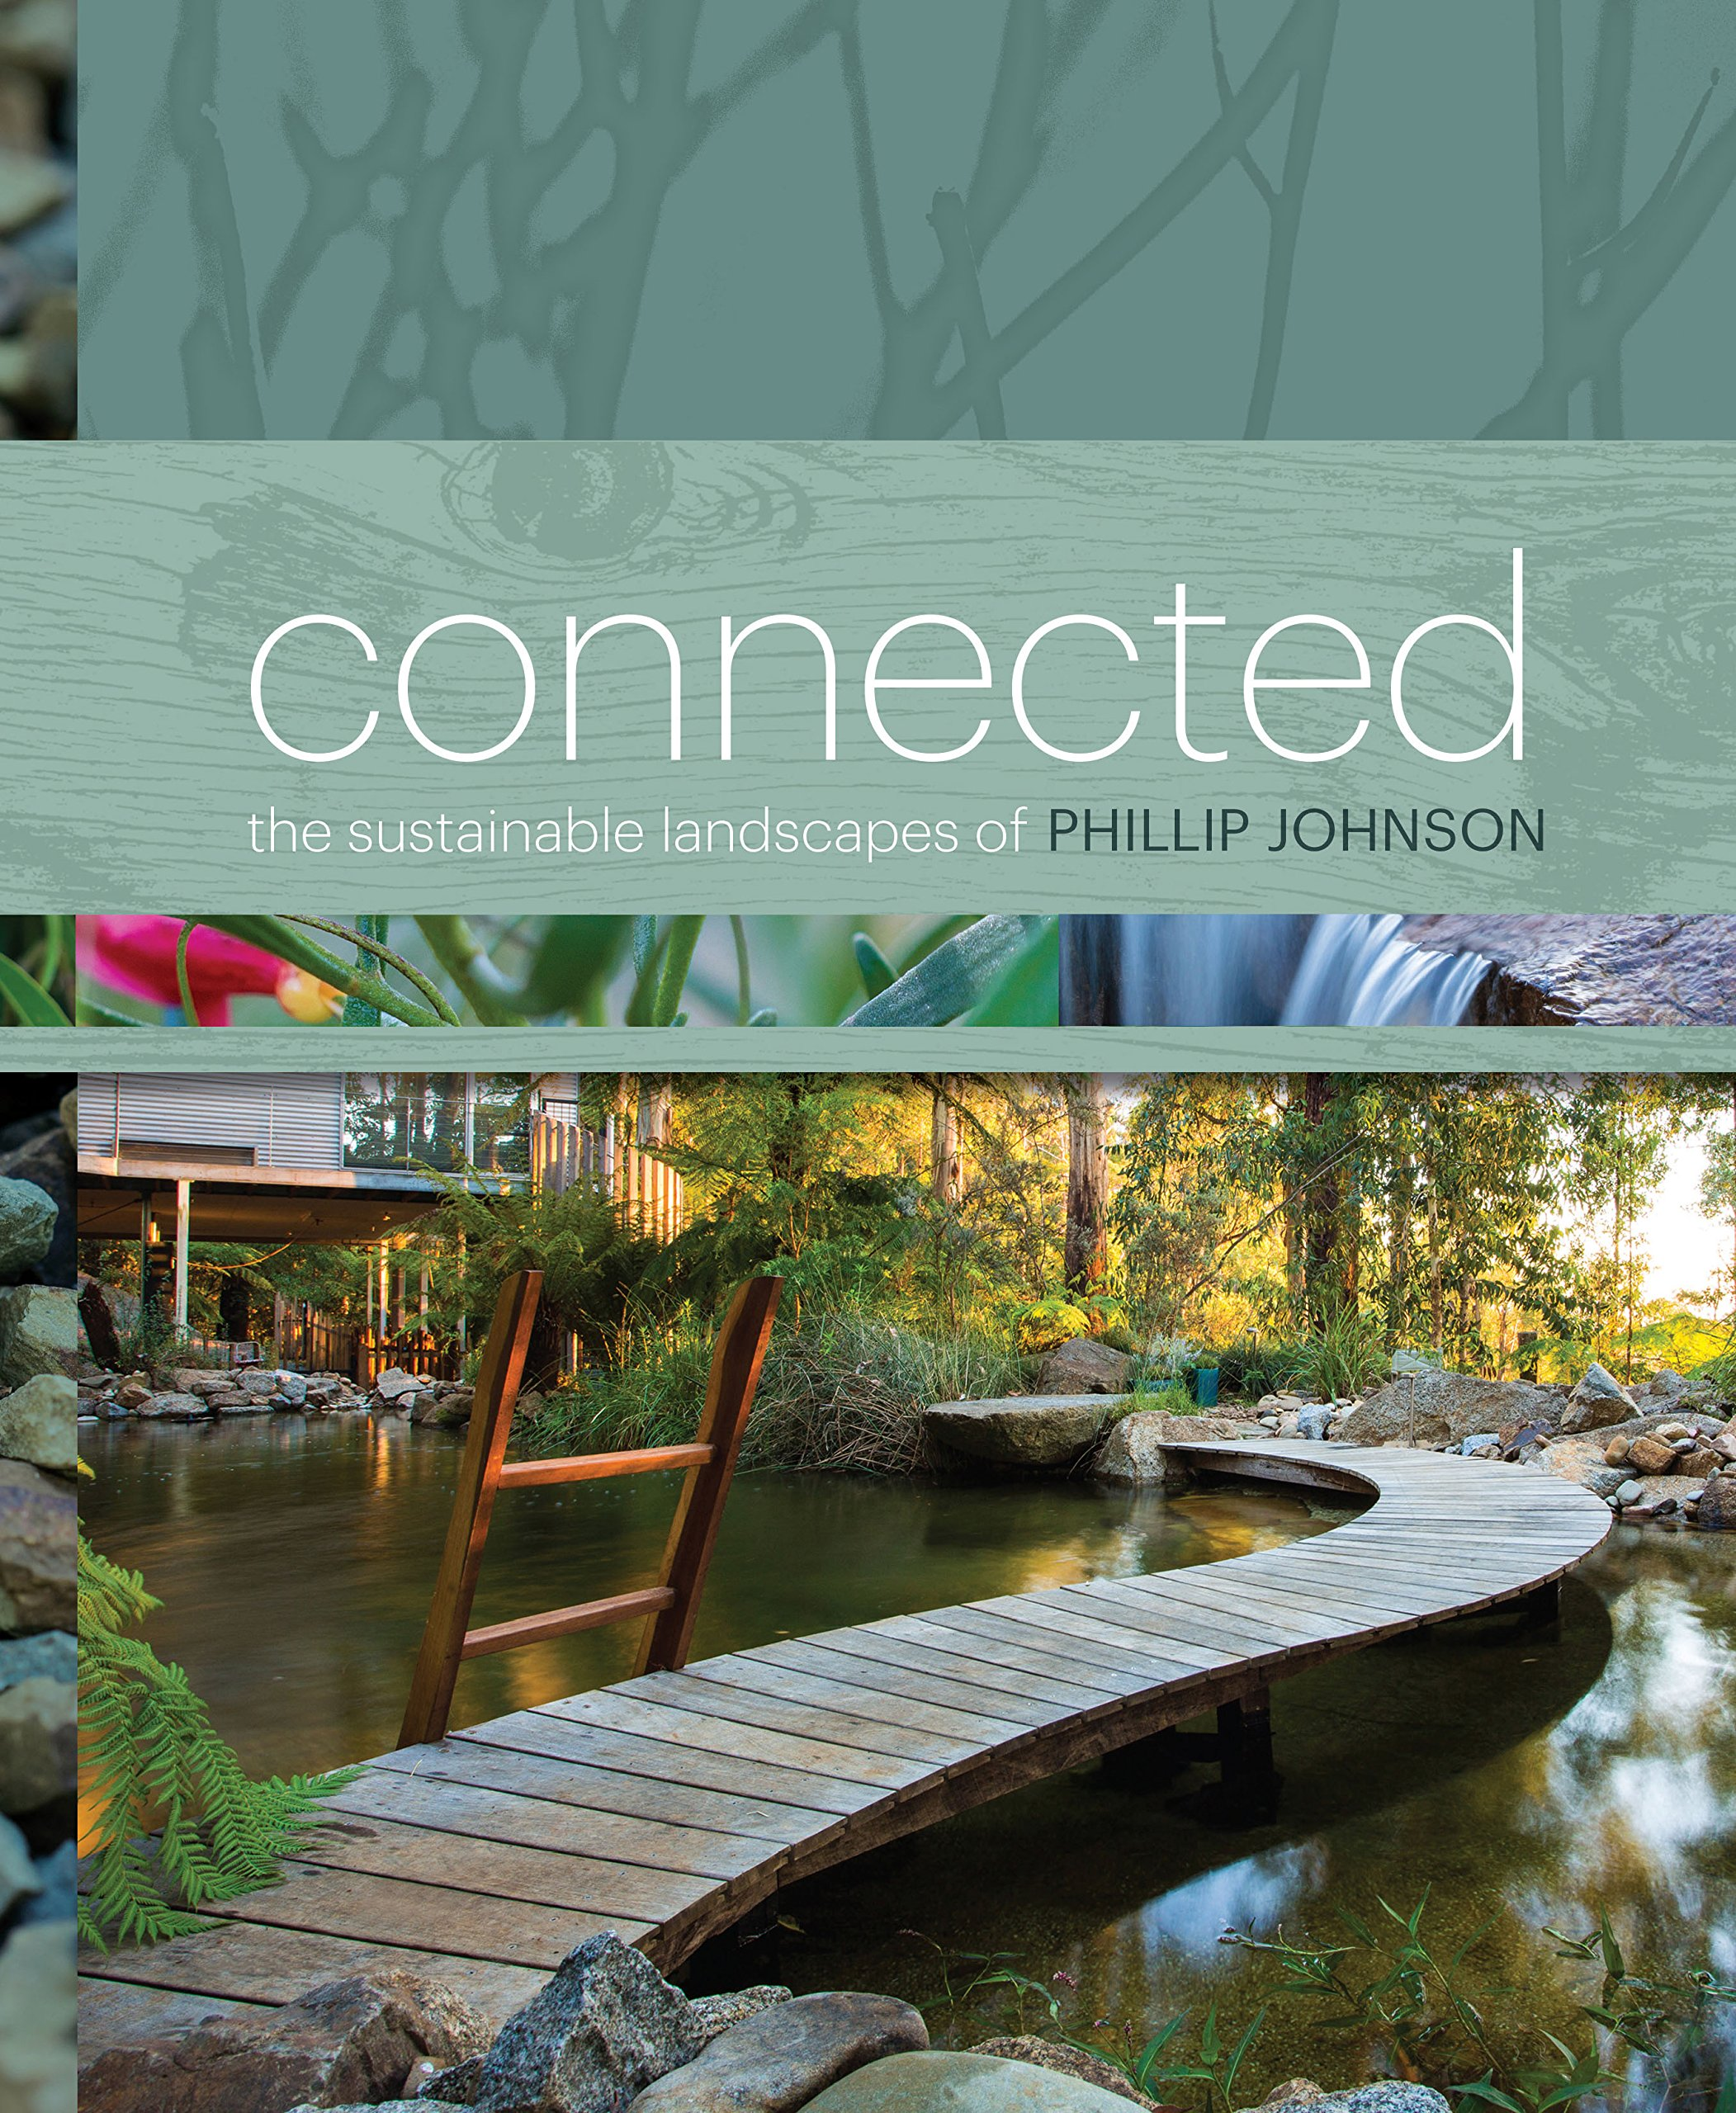 Connected: Phillip Johnson's Sustainable Landscapes